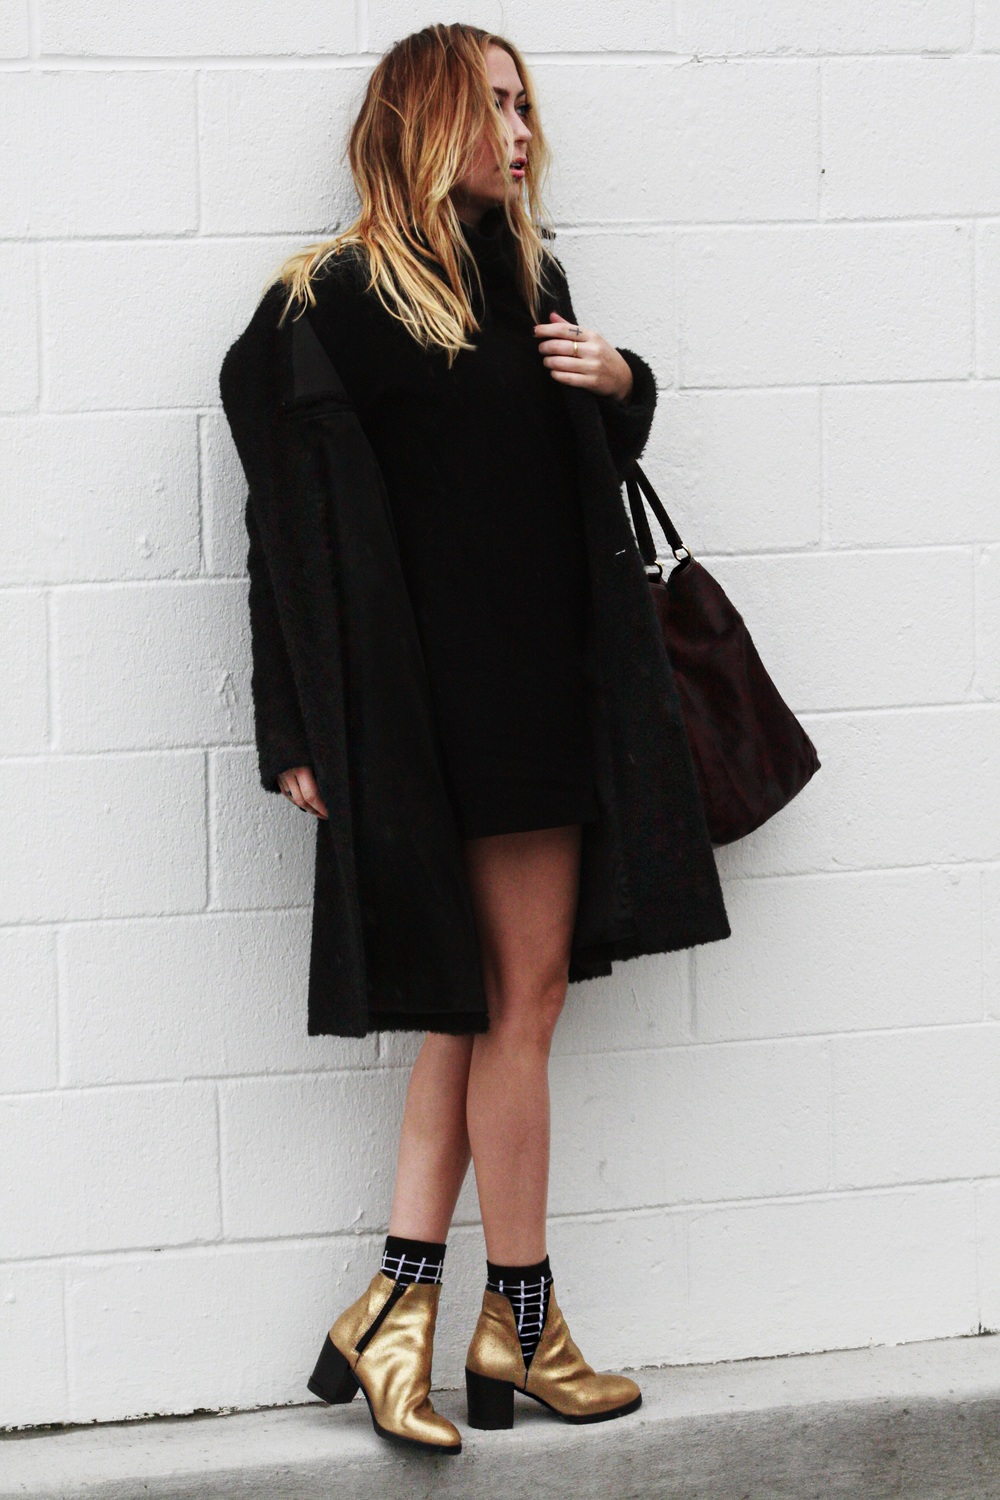 Dress - Reformation | Coat - Saint Laurent | Shoes - Miista | Socks - TopShop | Bag - Coach || photos by Mandy Mooring